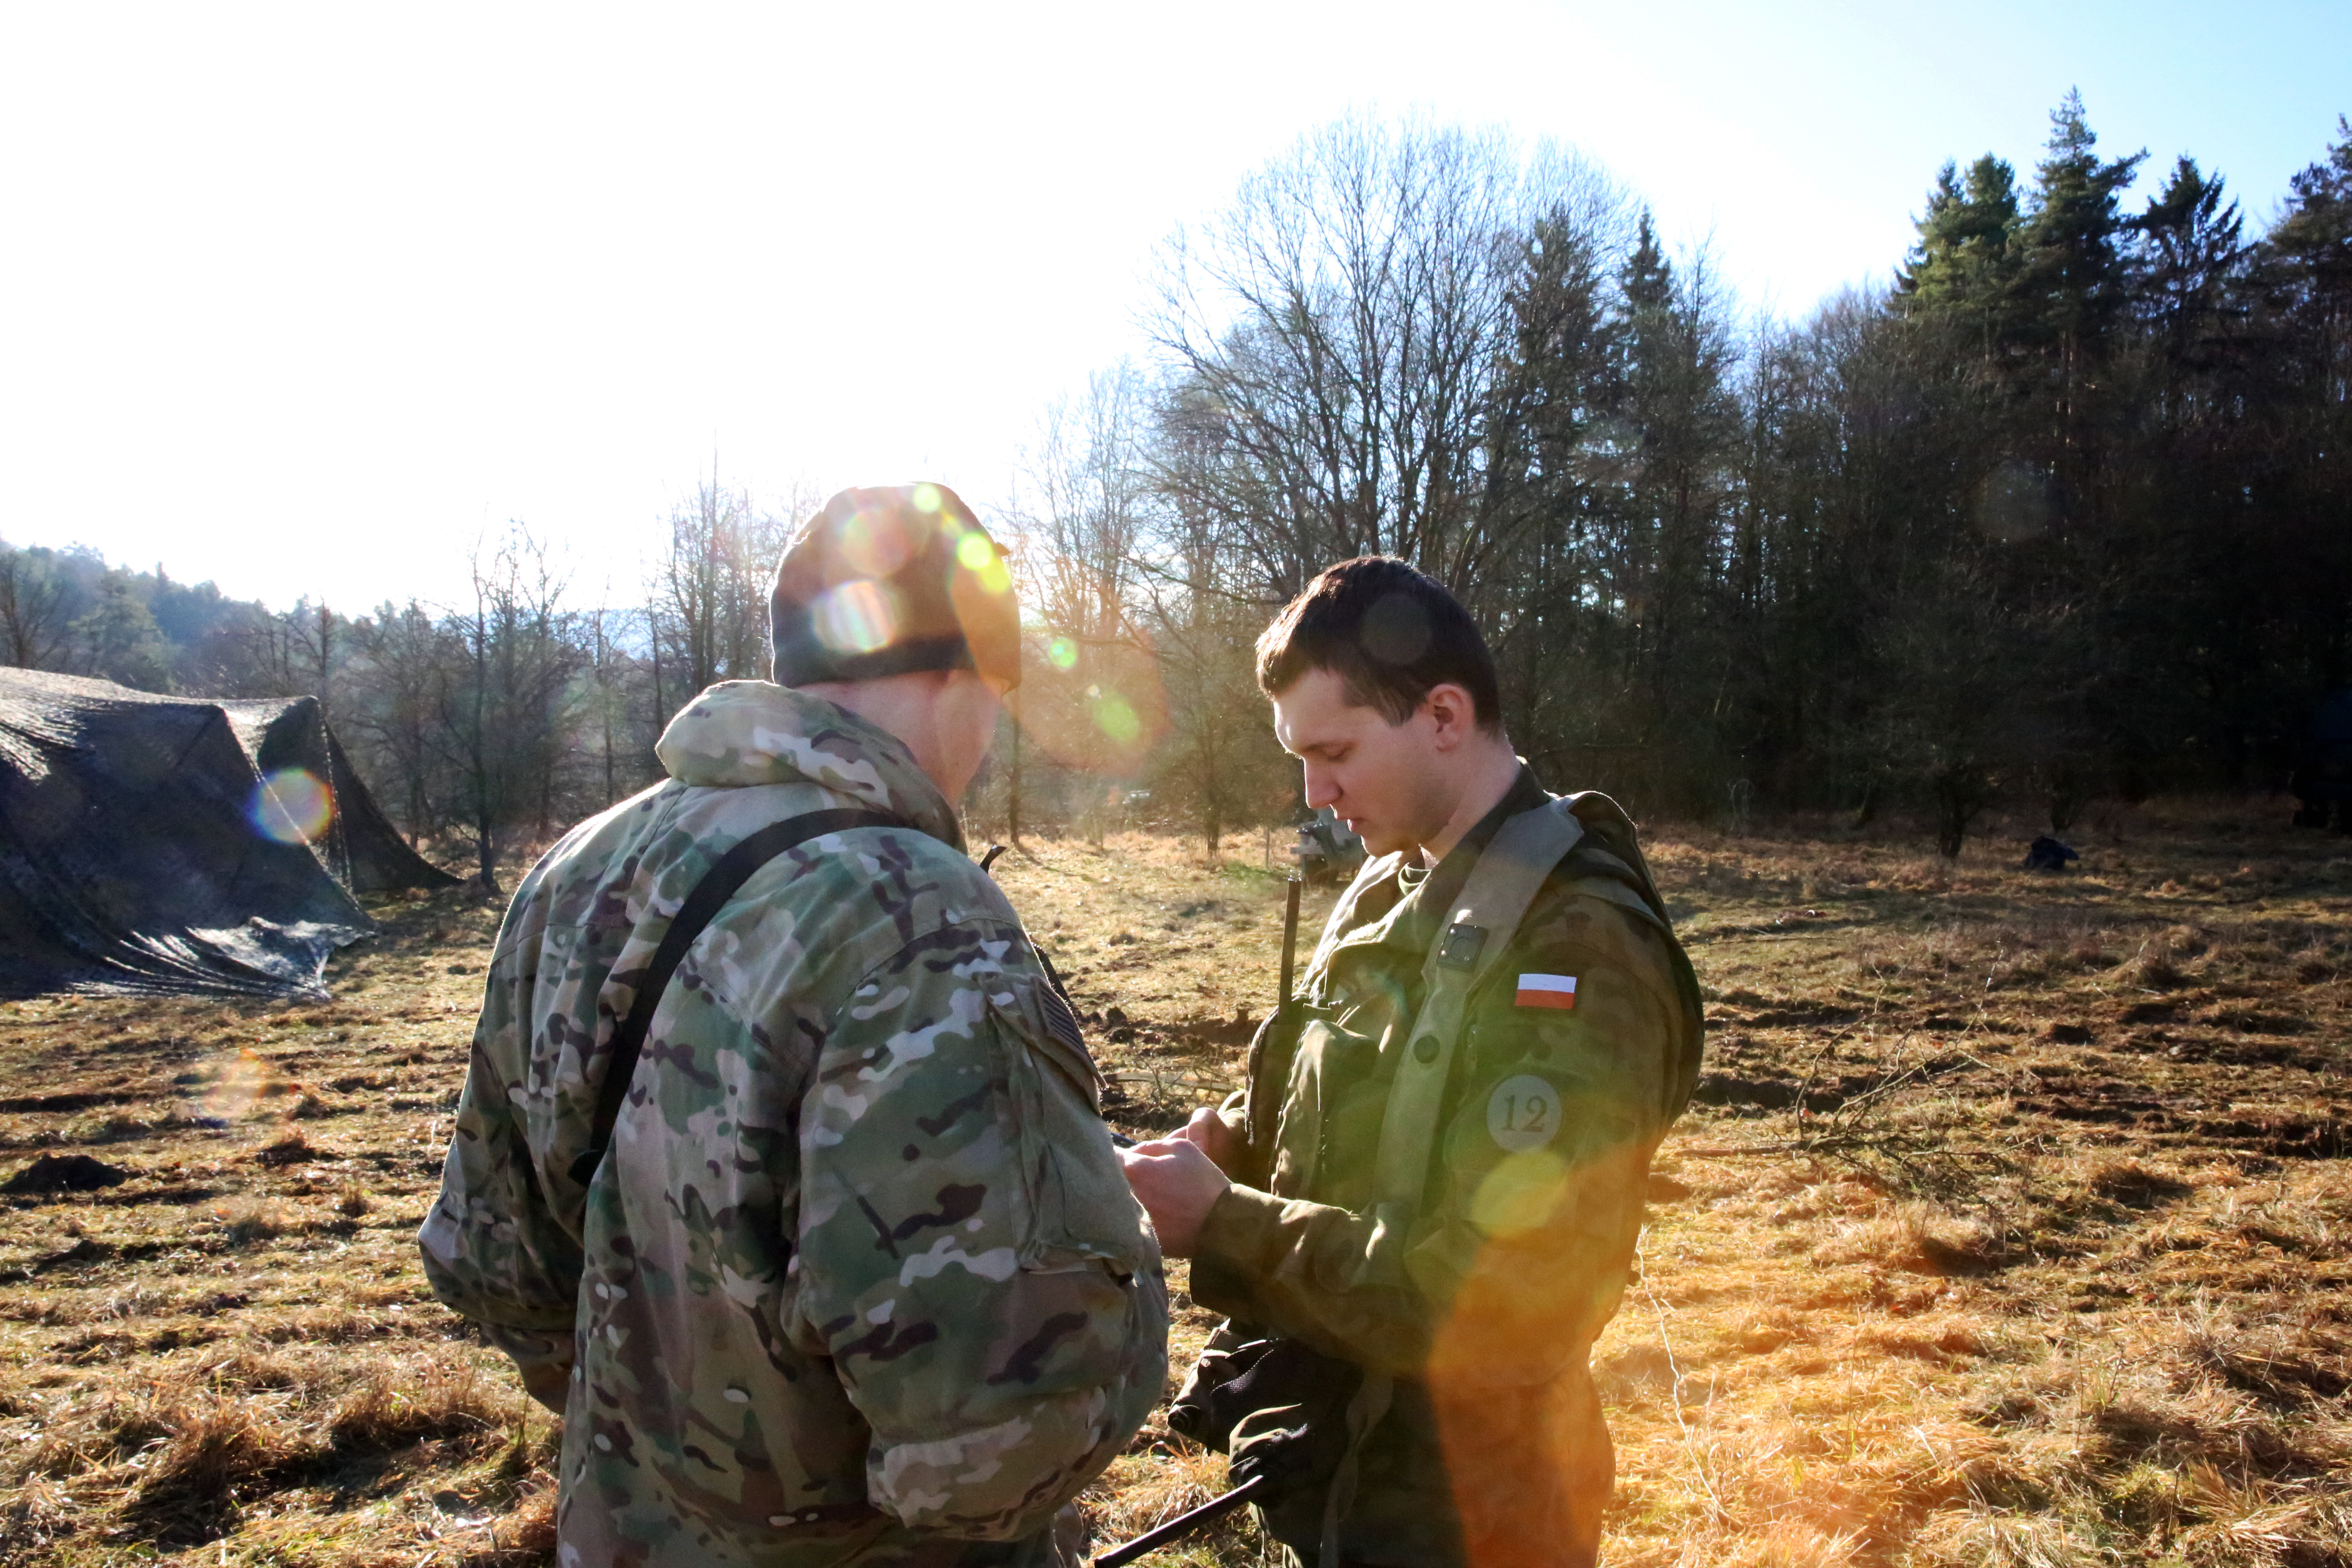 U.S. Army 2nd Lt. Justin Hortin, a platoon leader assigned to Charlie Company, 44th Expeditionary Signal Battalion, 2nd Theater Signal Brigade, speaks with a Polish Army officer during exercise Allied Spirit VIII, Jan. 31, 2018 in the Hohenfels Training Area, Germany. (U.S. Army photo by William B. King)